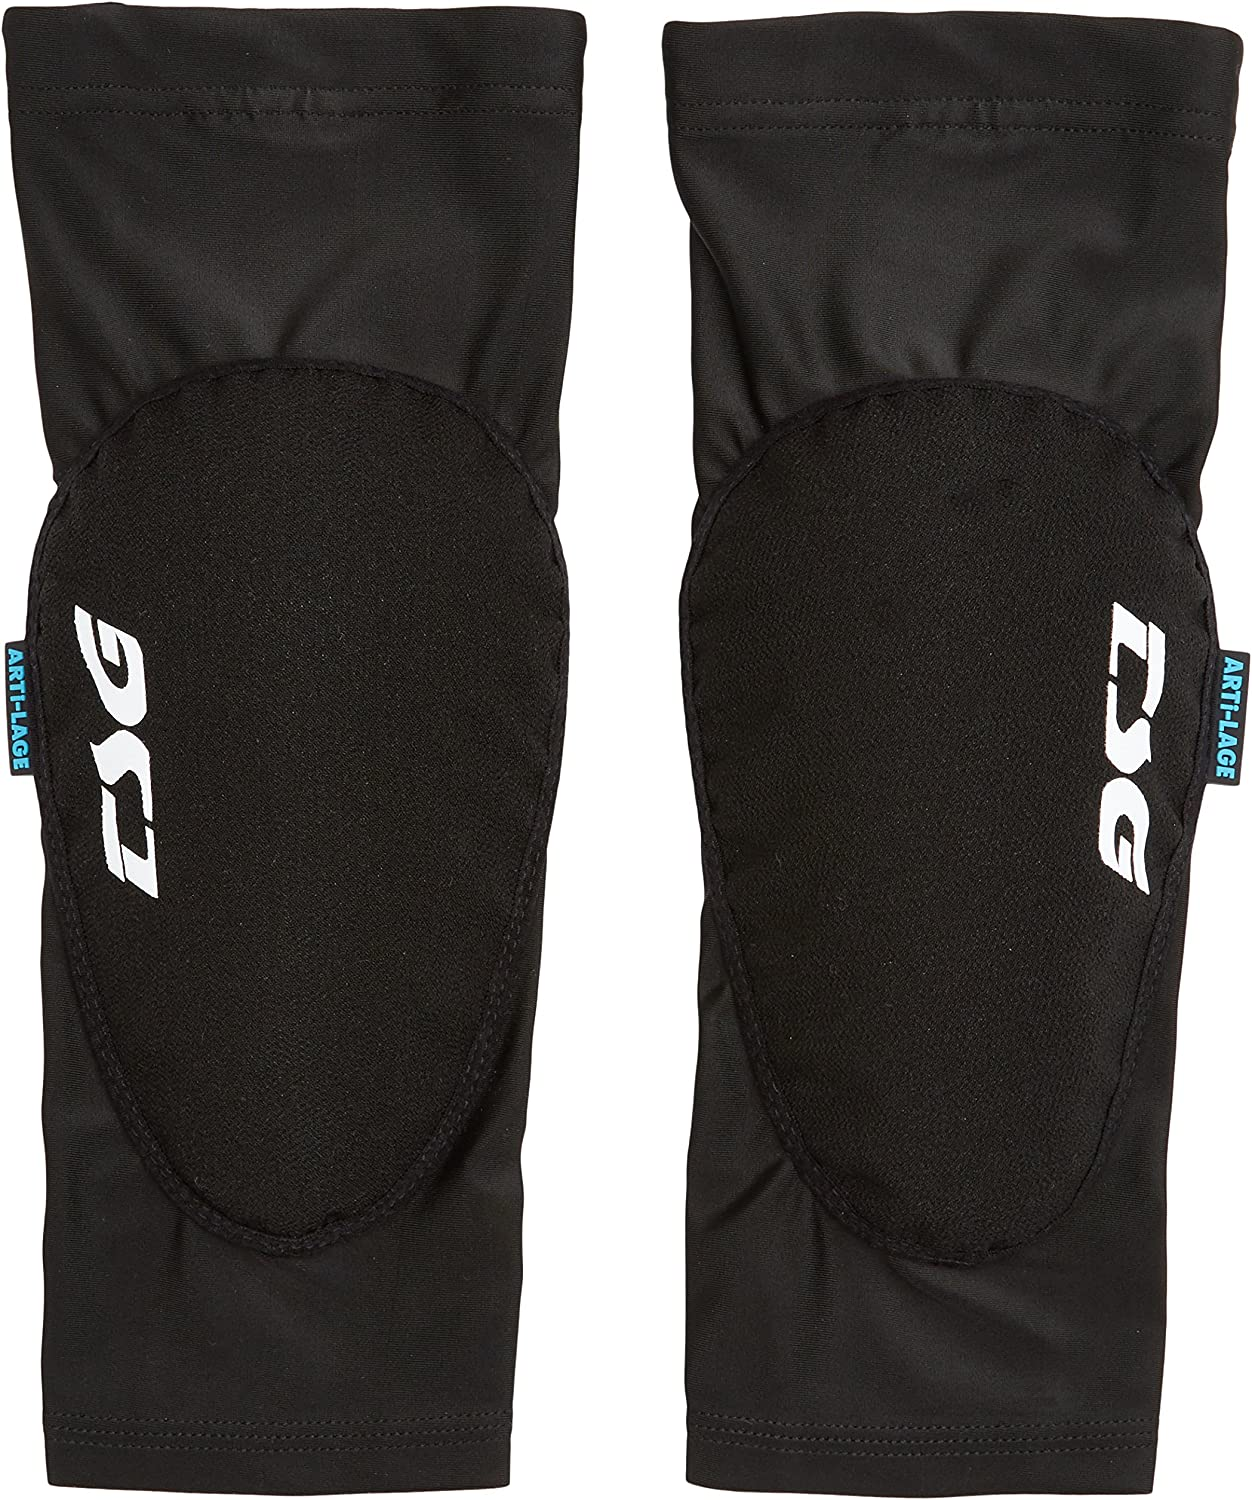 TSG Elbow-Sleeve 2nd Skin A 2.0 Professional Mountain Bike Elbow Pad for Bicycle